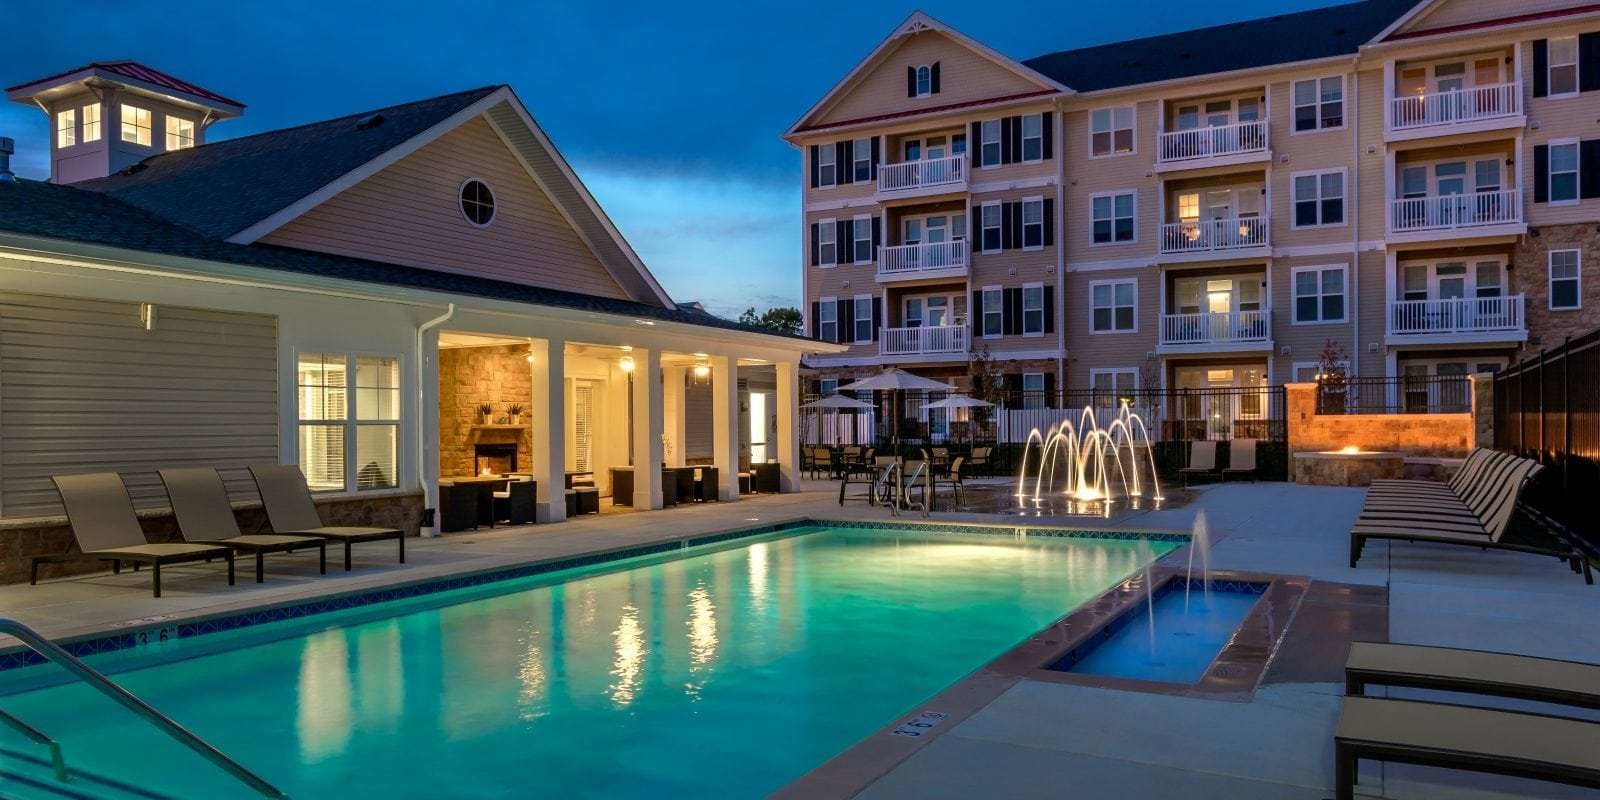 Best Tgm Creekside Village Apartments Just Another Tgm With Pictures